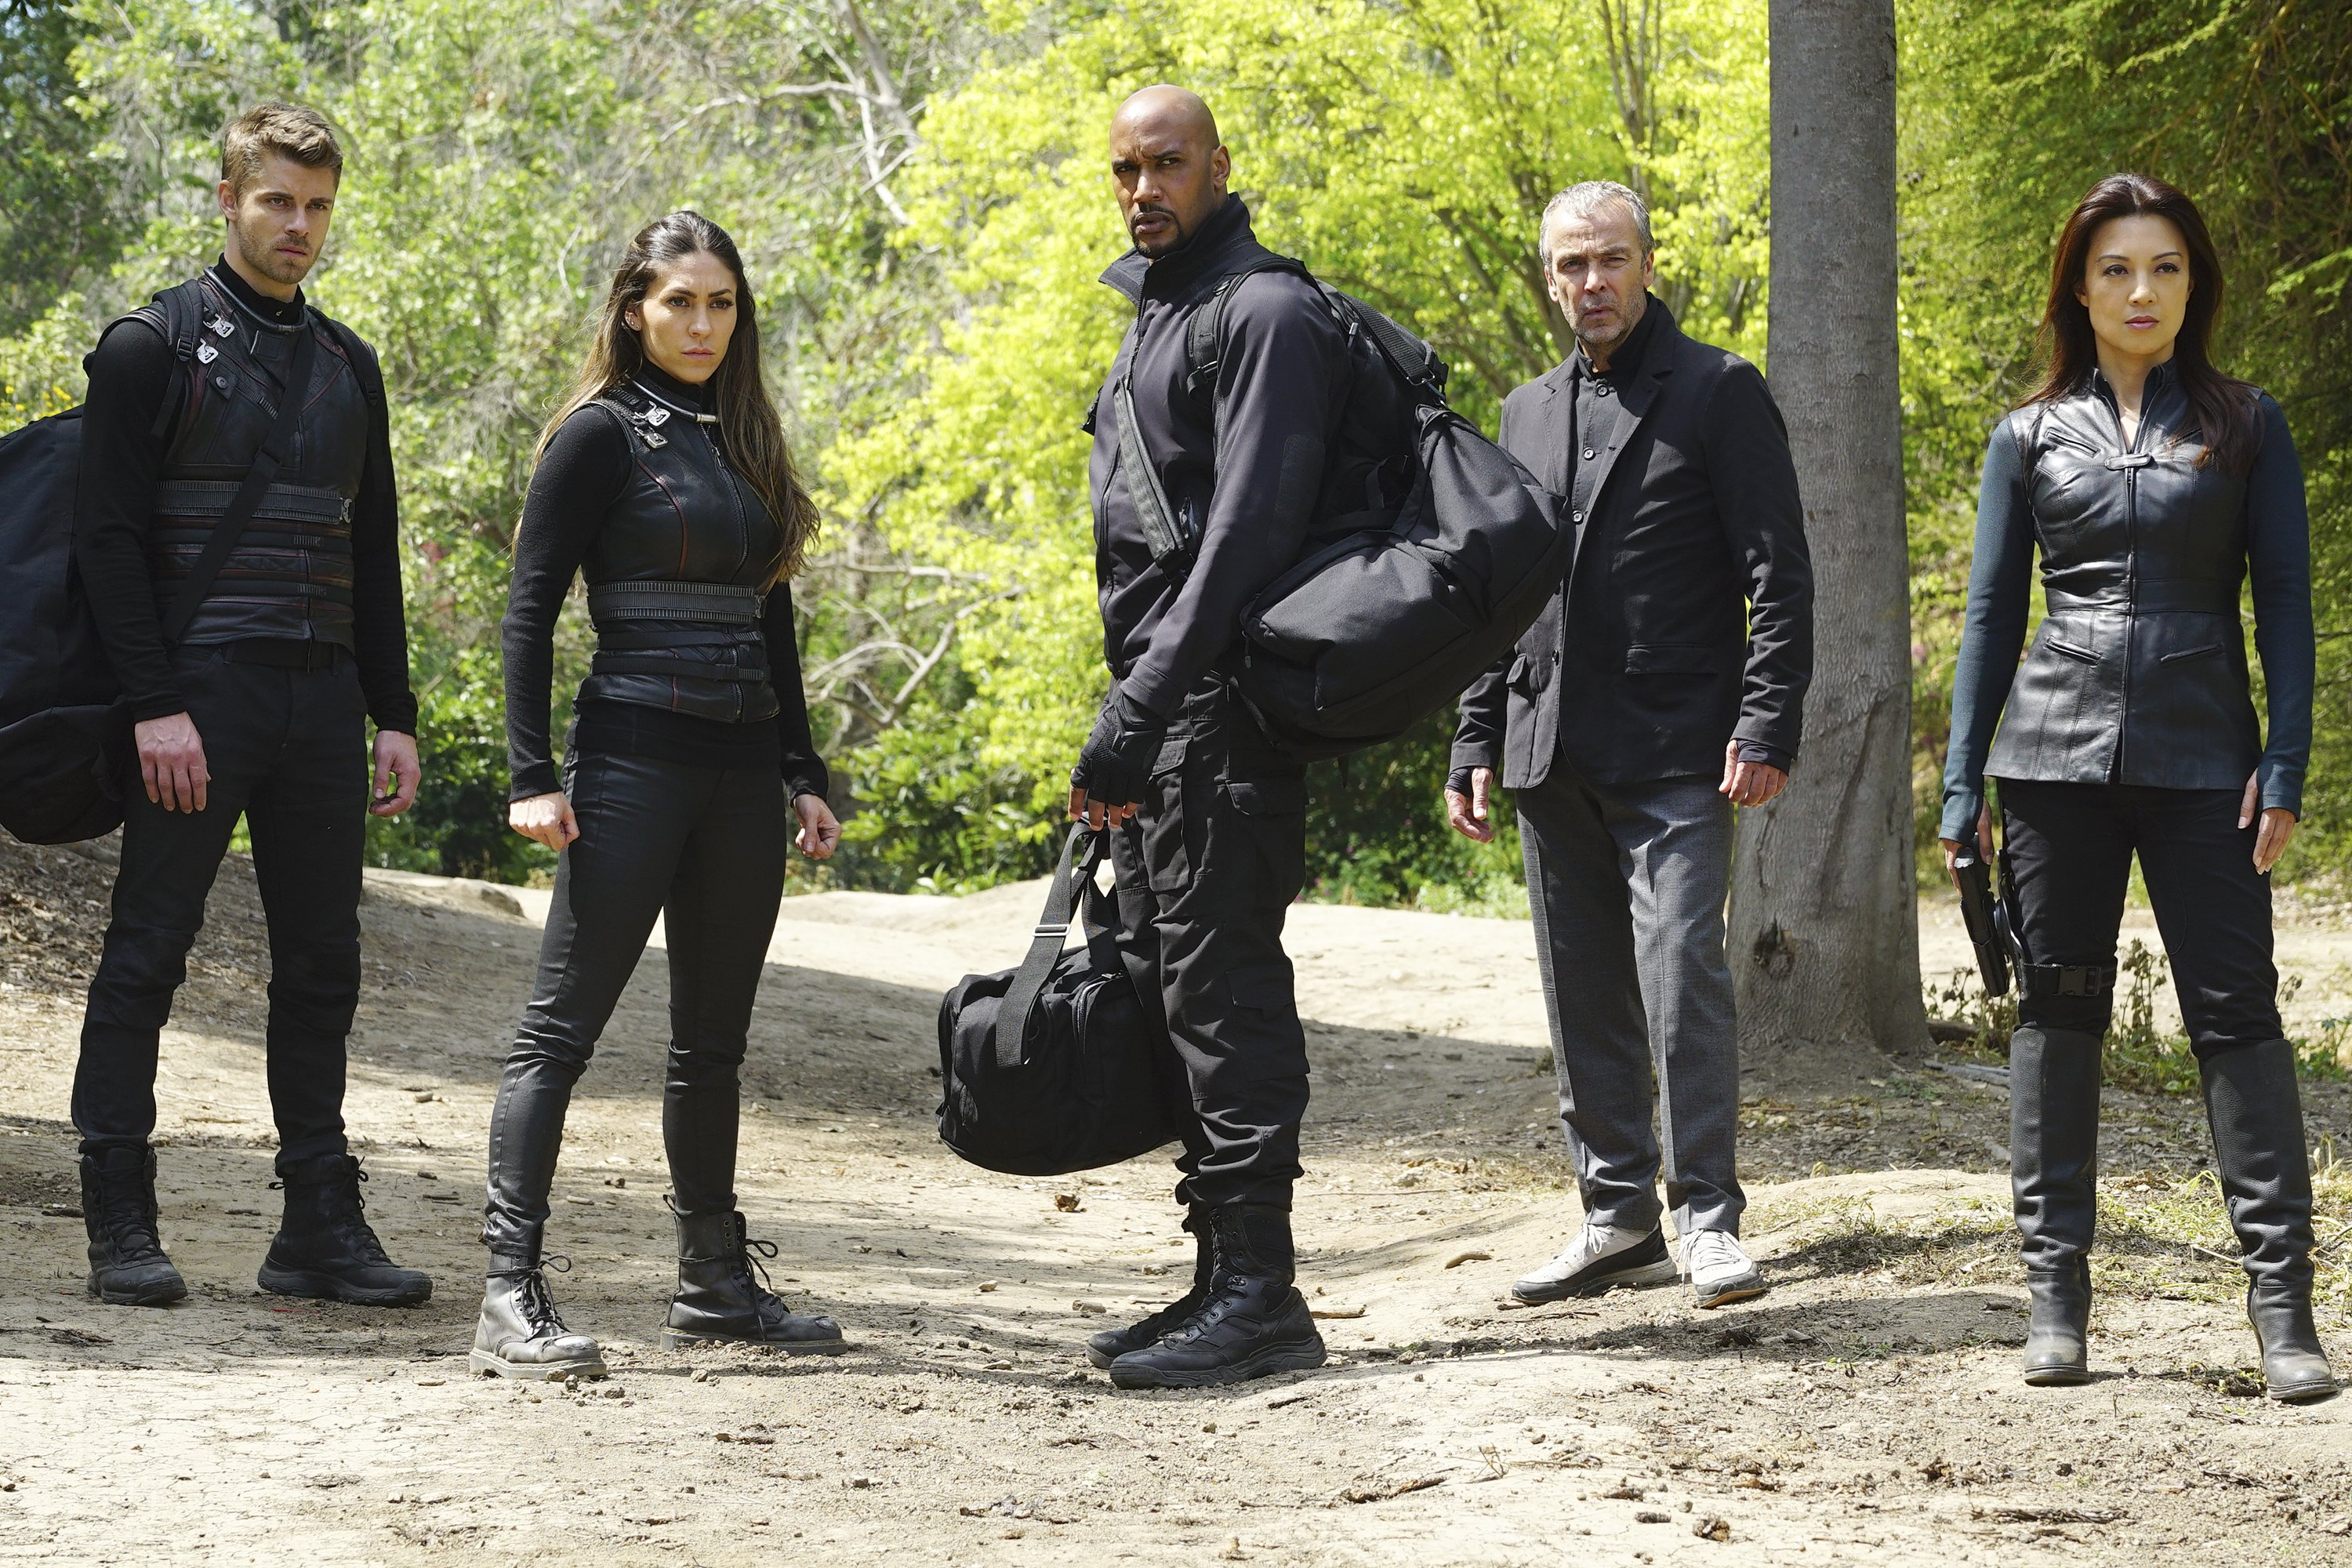 Marvel's Agents of S.H.I.E.L.D. Season 3 21